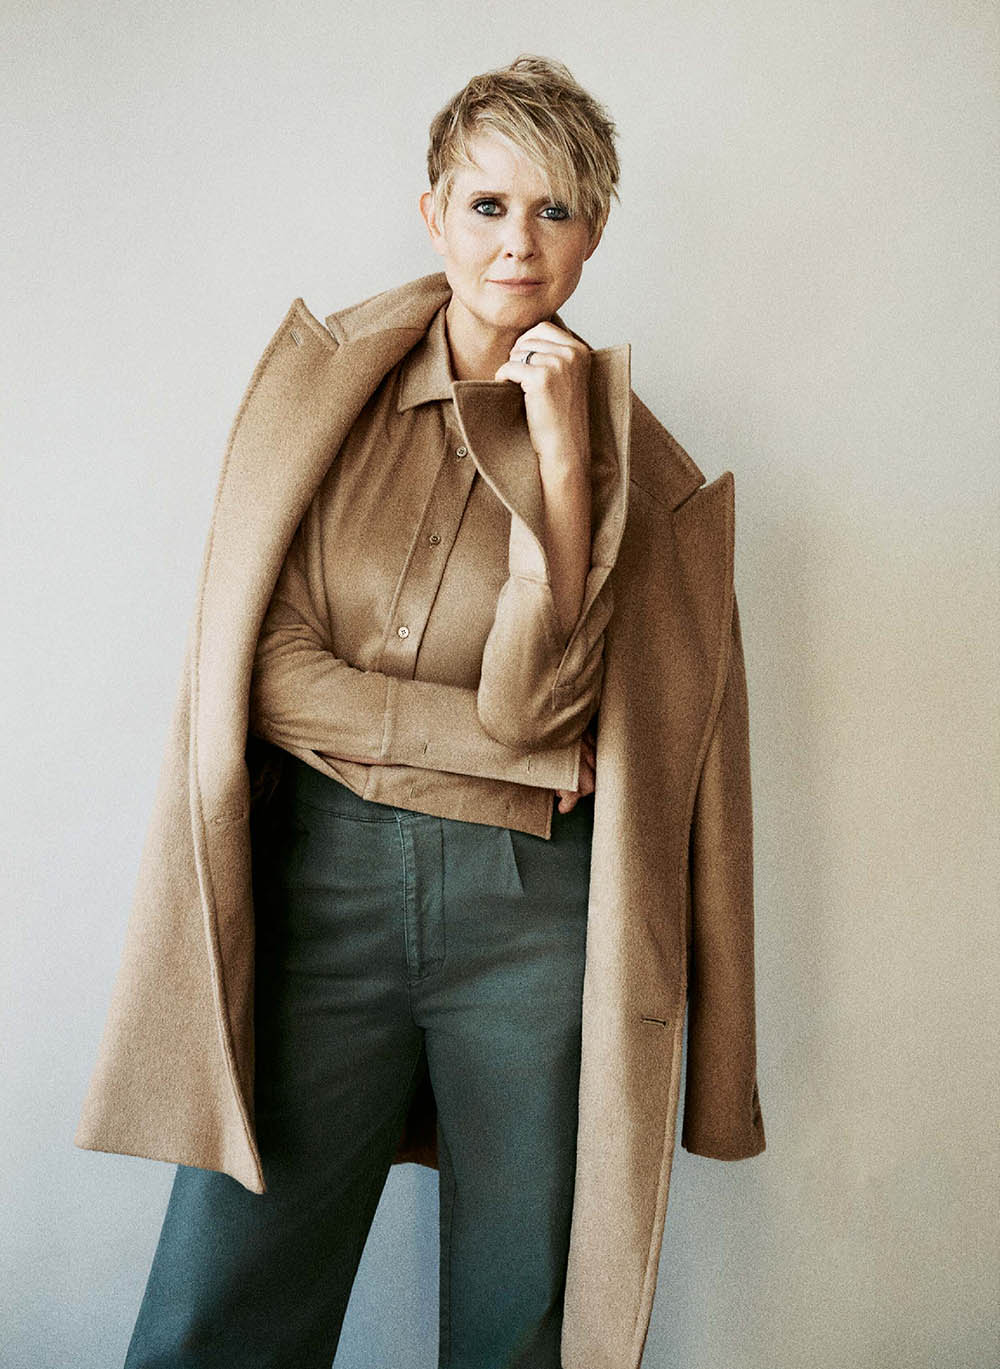 Cynthia Nixon covers The Sunday Times Style August 30th, 2020 by Cass Bird